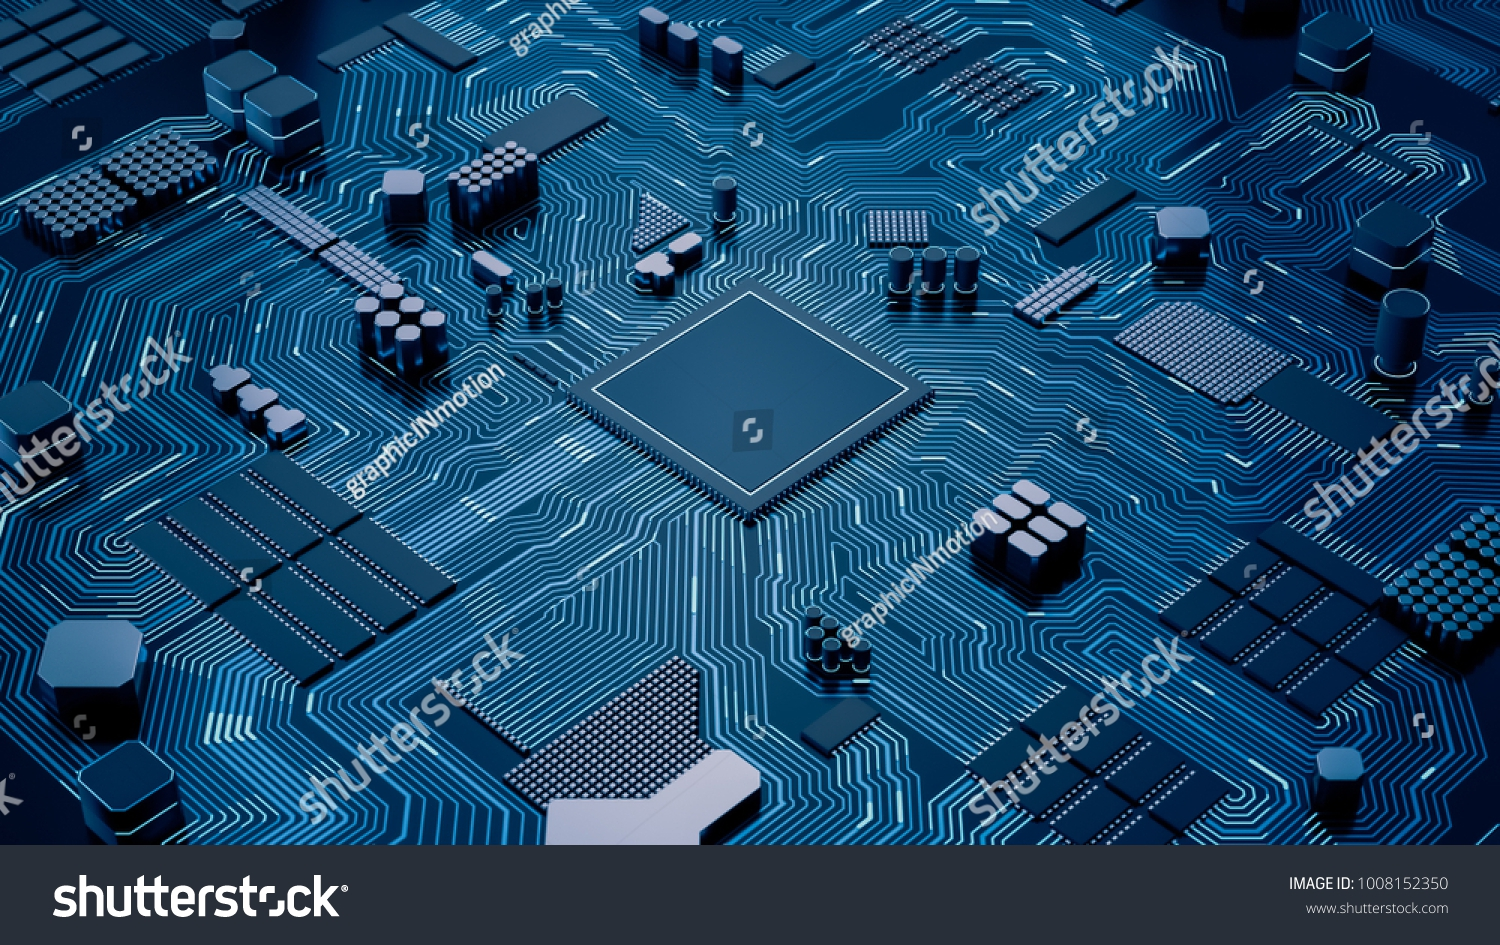 Stock Photo Cpu Chip On Motherboard Abstract D Render Of A Computer Processor Chip On A Circuit Board With 1008152350